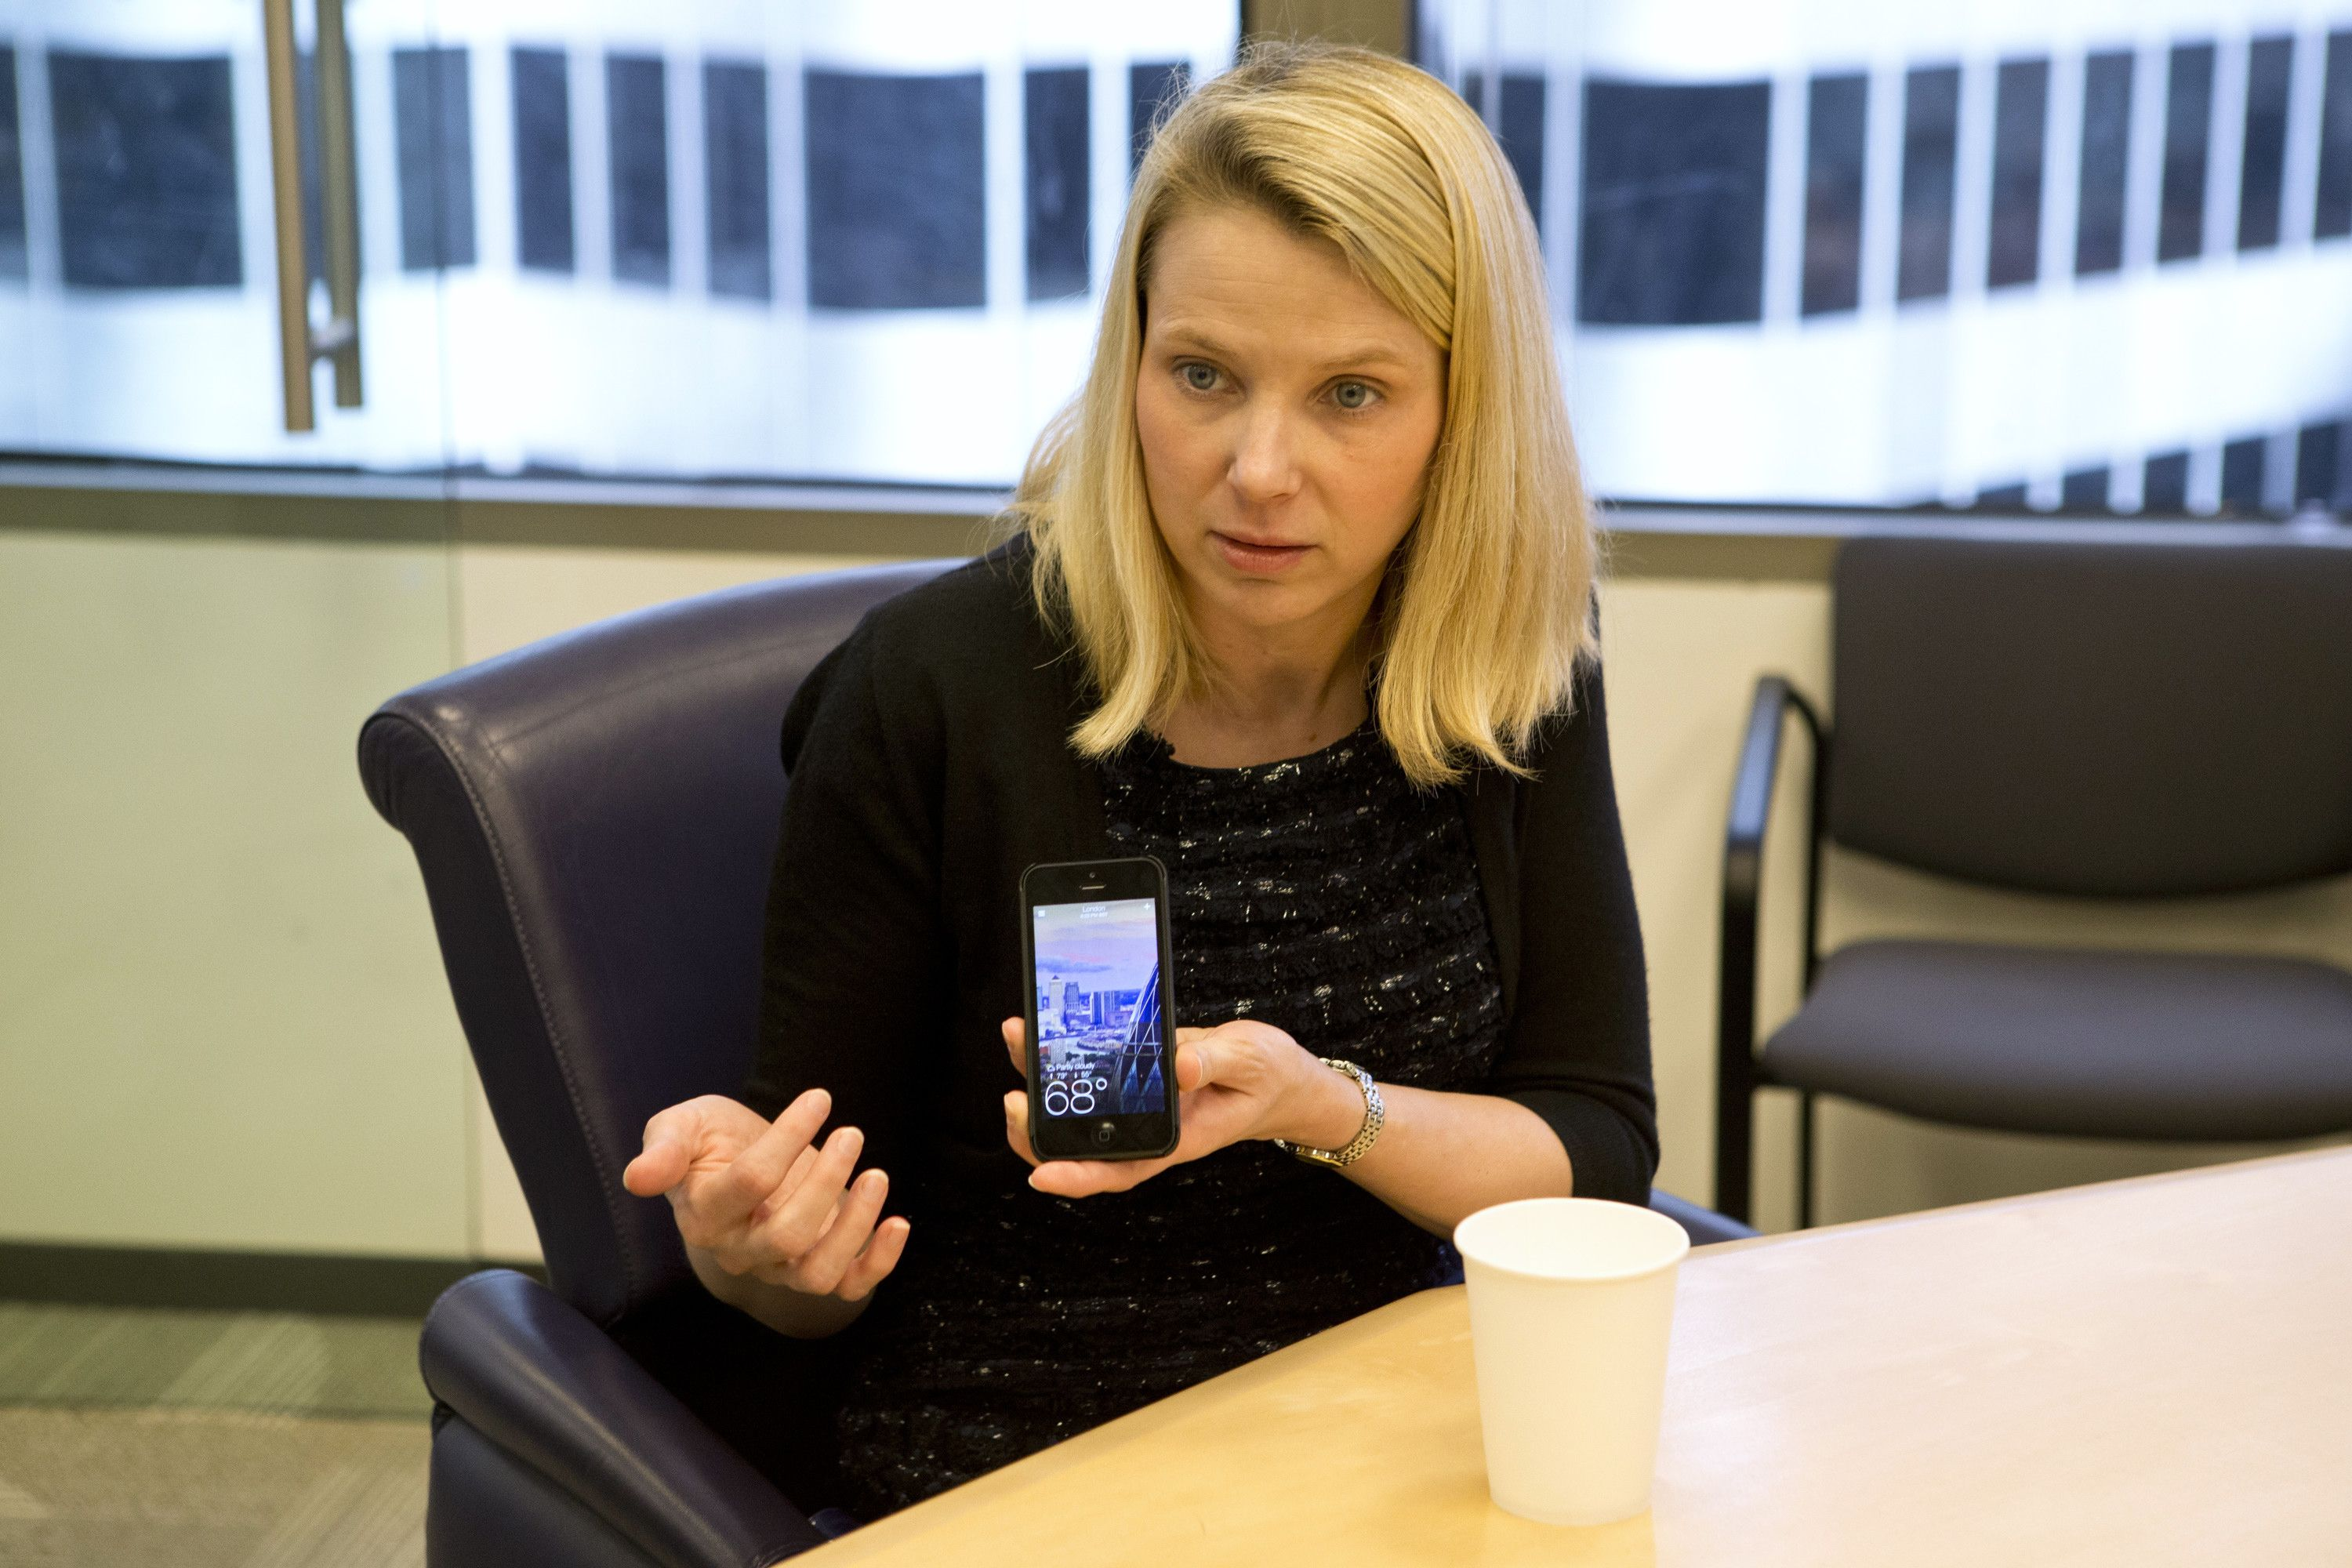 Yahoo! results show mixed picture for CEO Mayer